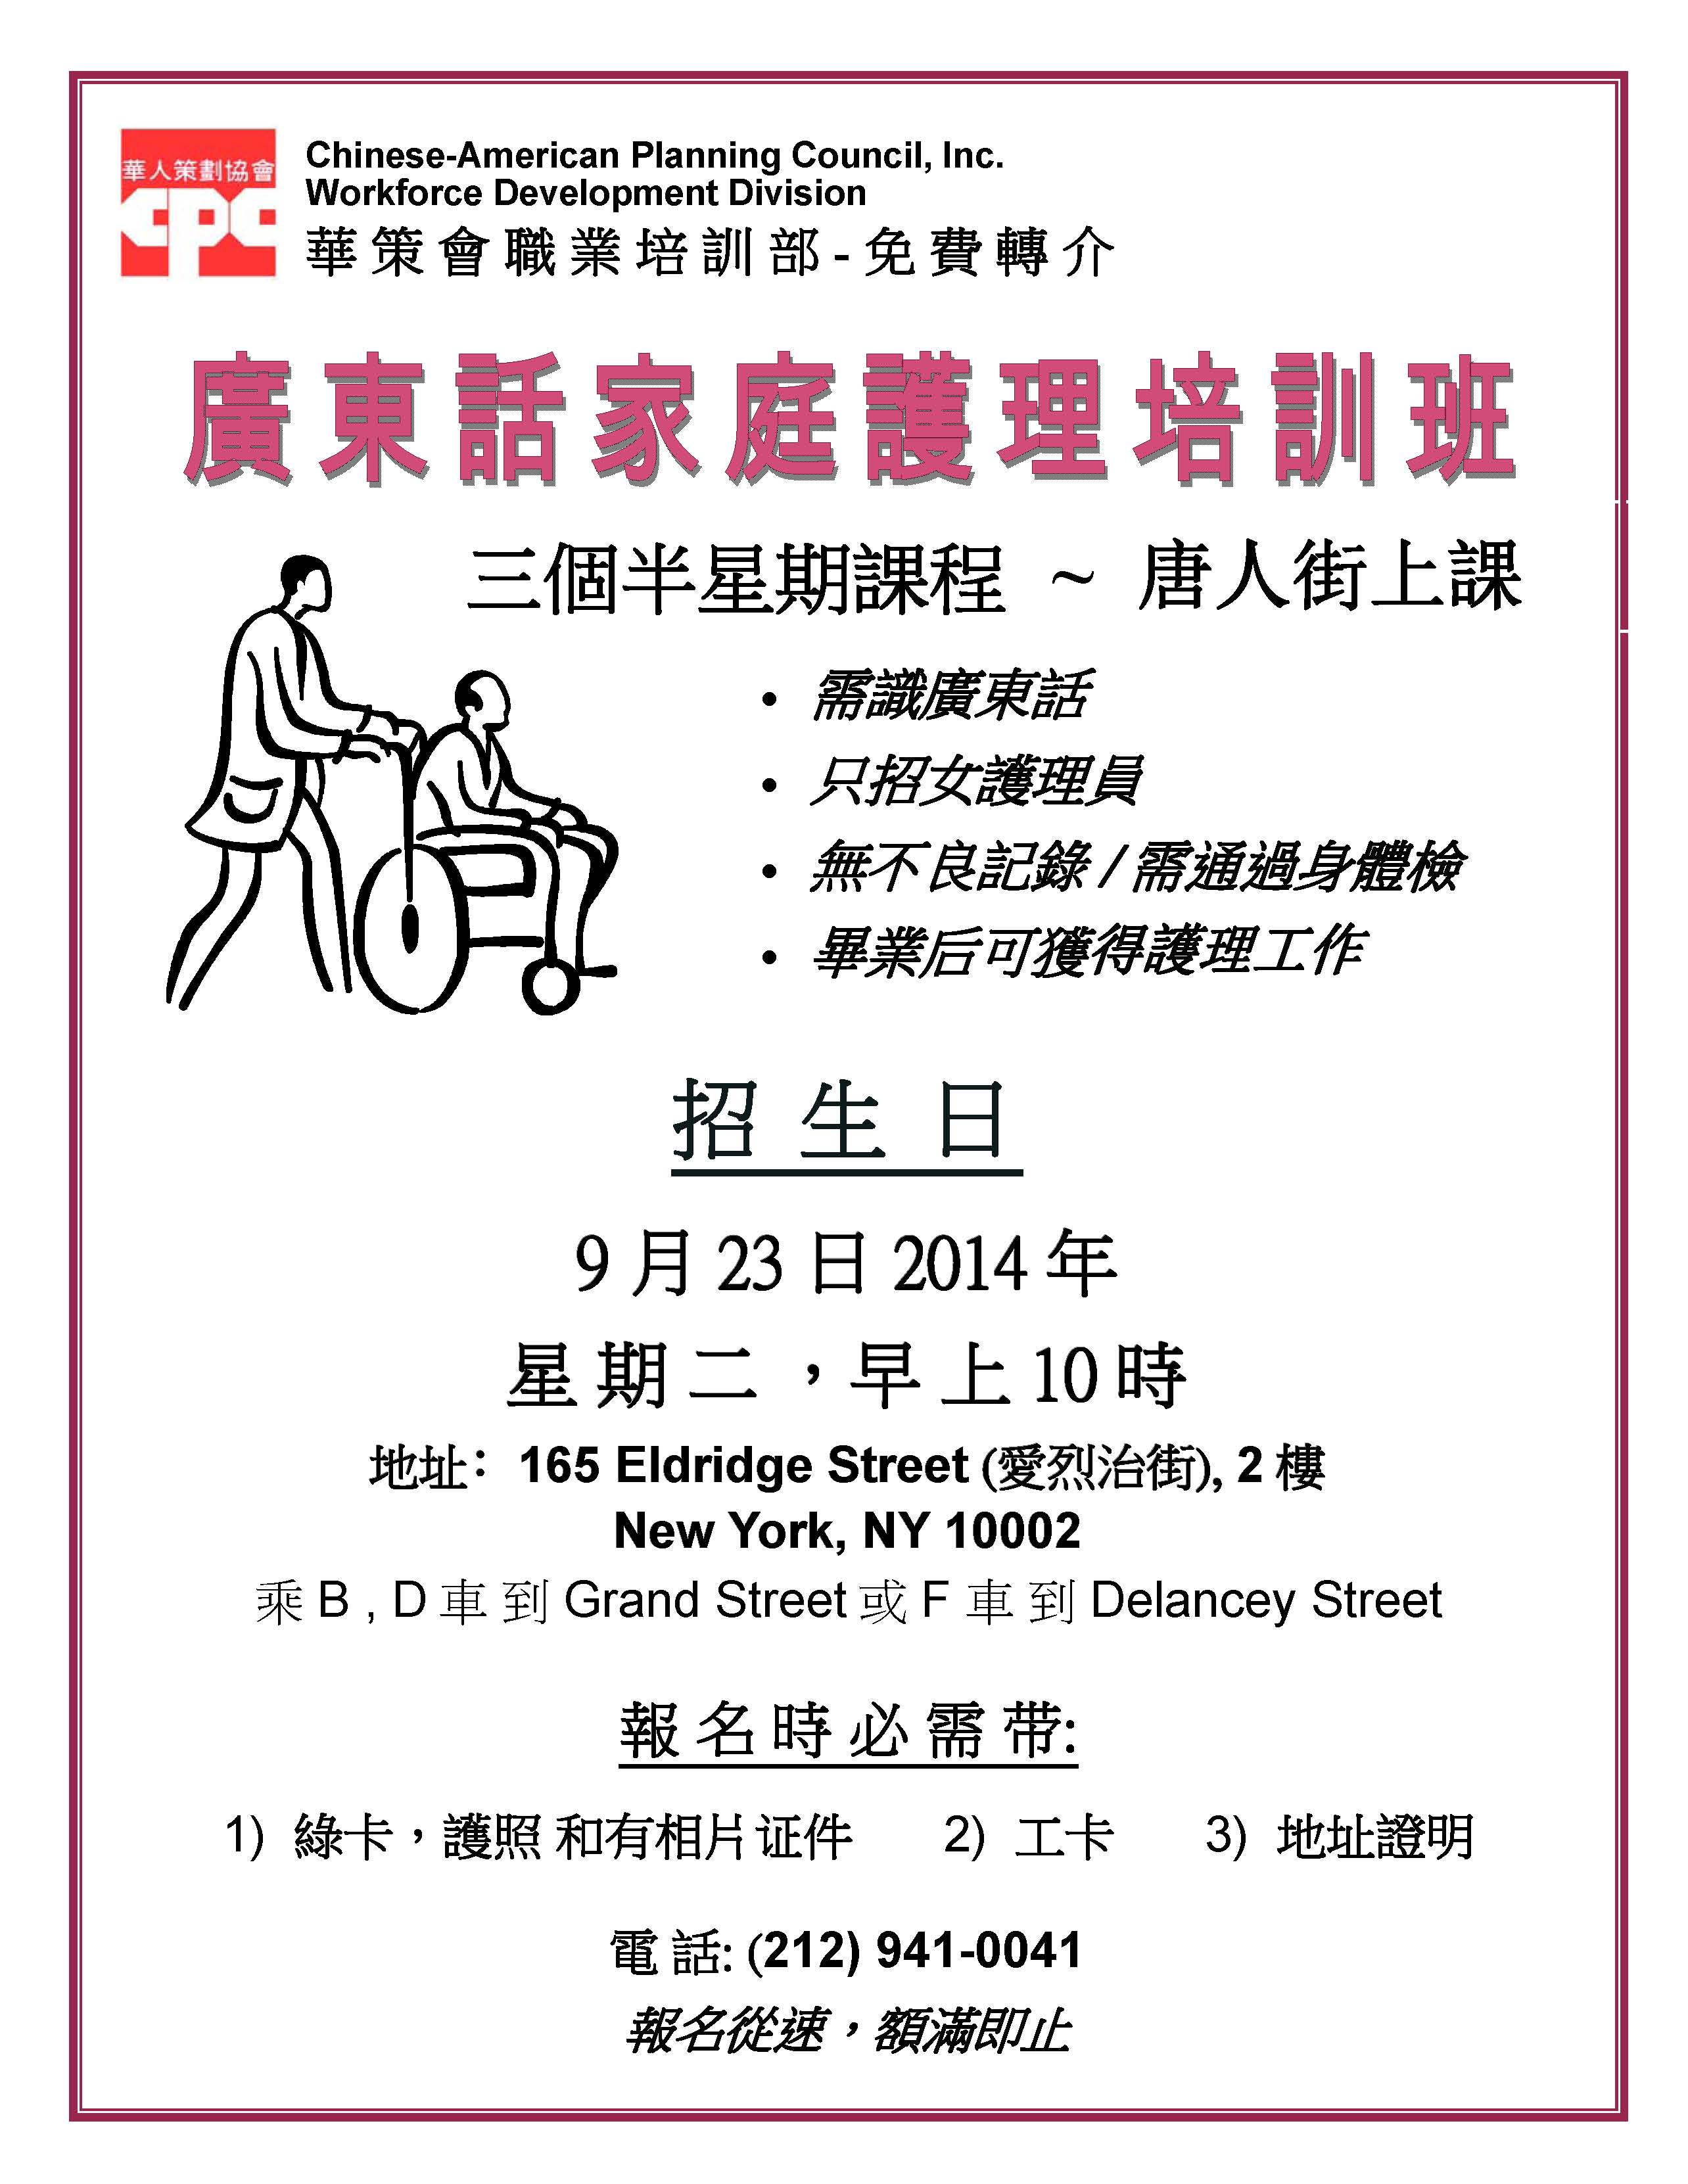 Cantonese Home Health Aide Training Recruitment Chinese American